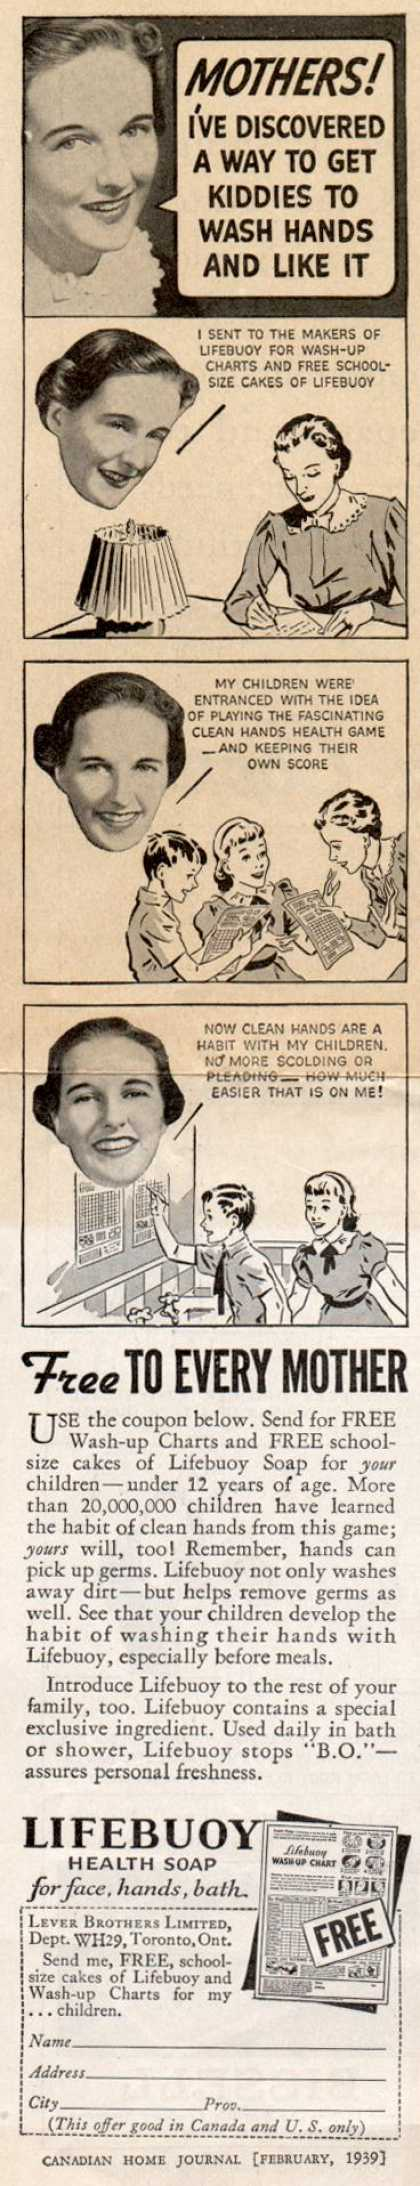 Lever Brothers Ltd.'s Lifebuoy Health Soap – Mothers! I've discovered a way to get kiddies to wash hands and like it (1939)